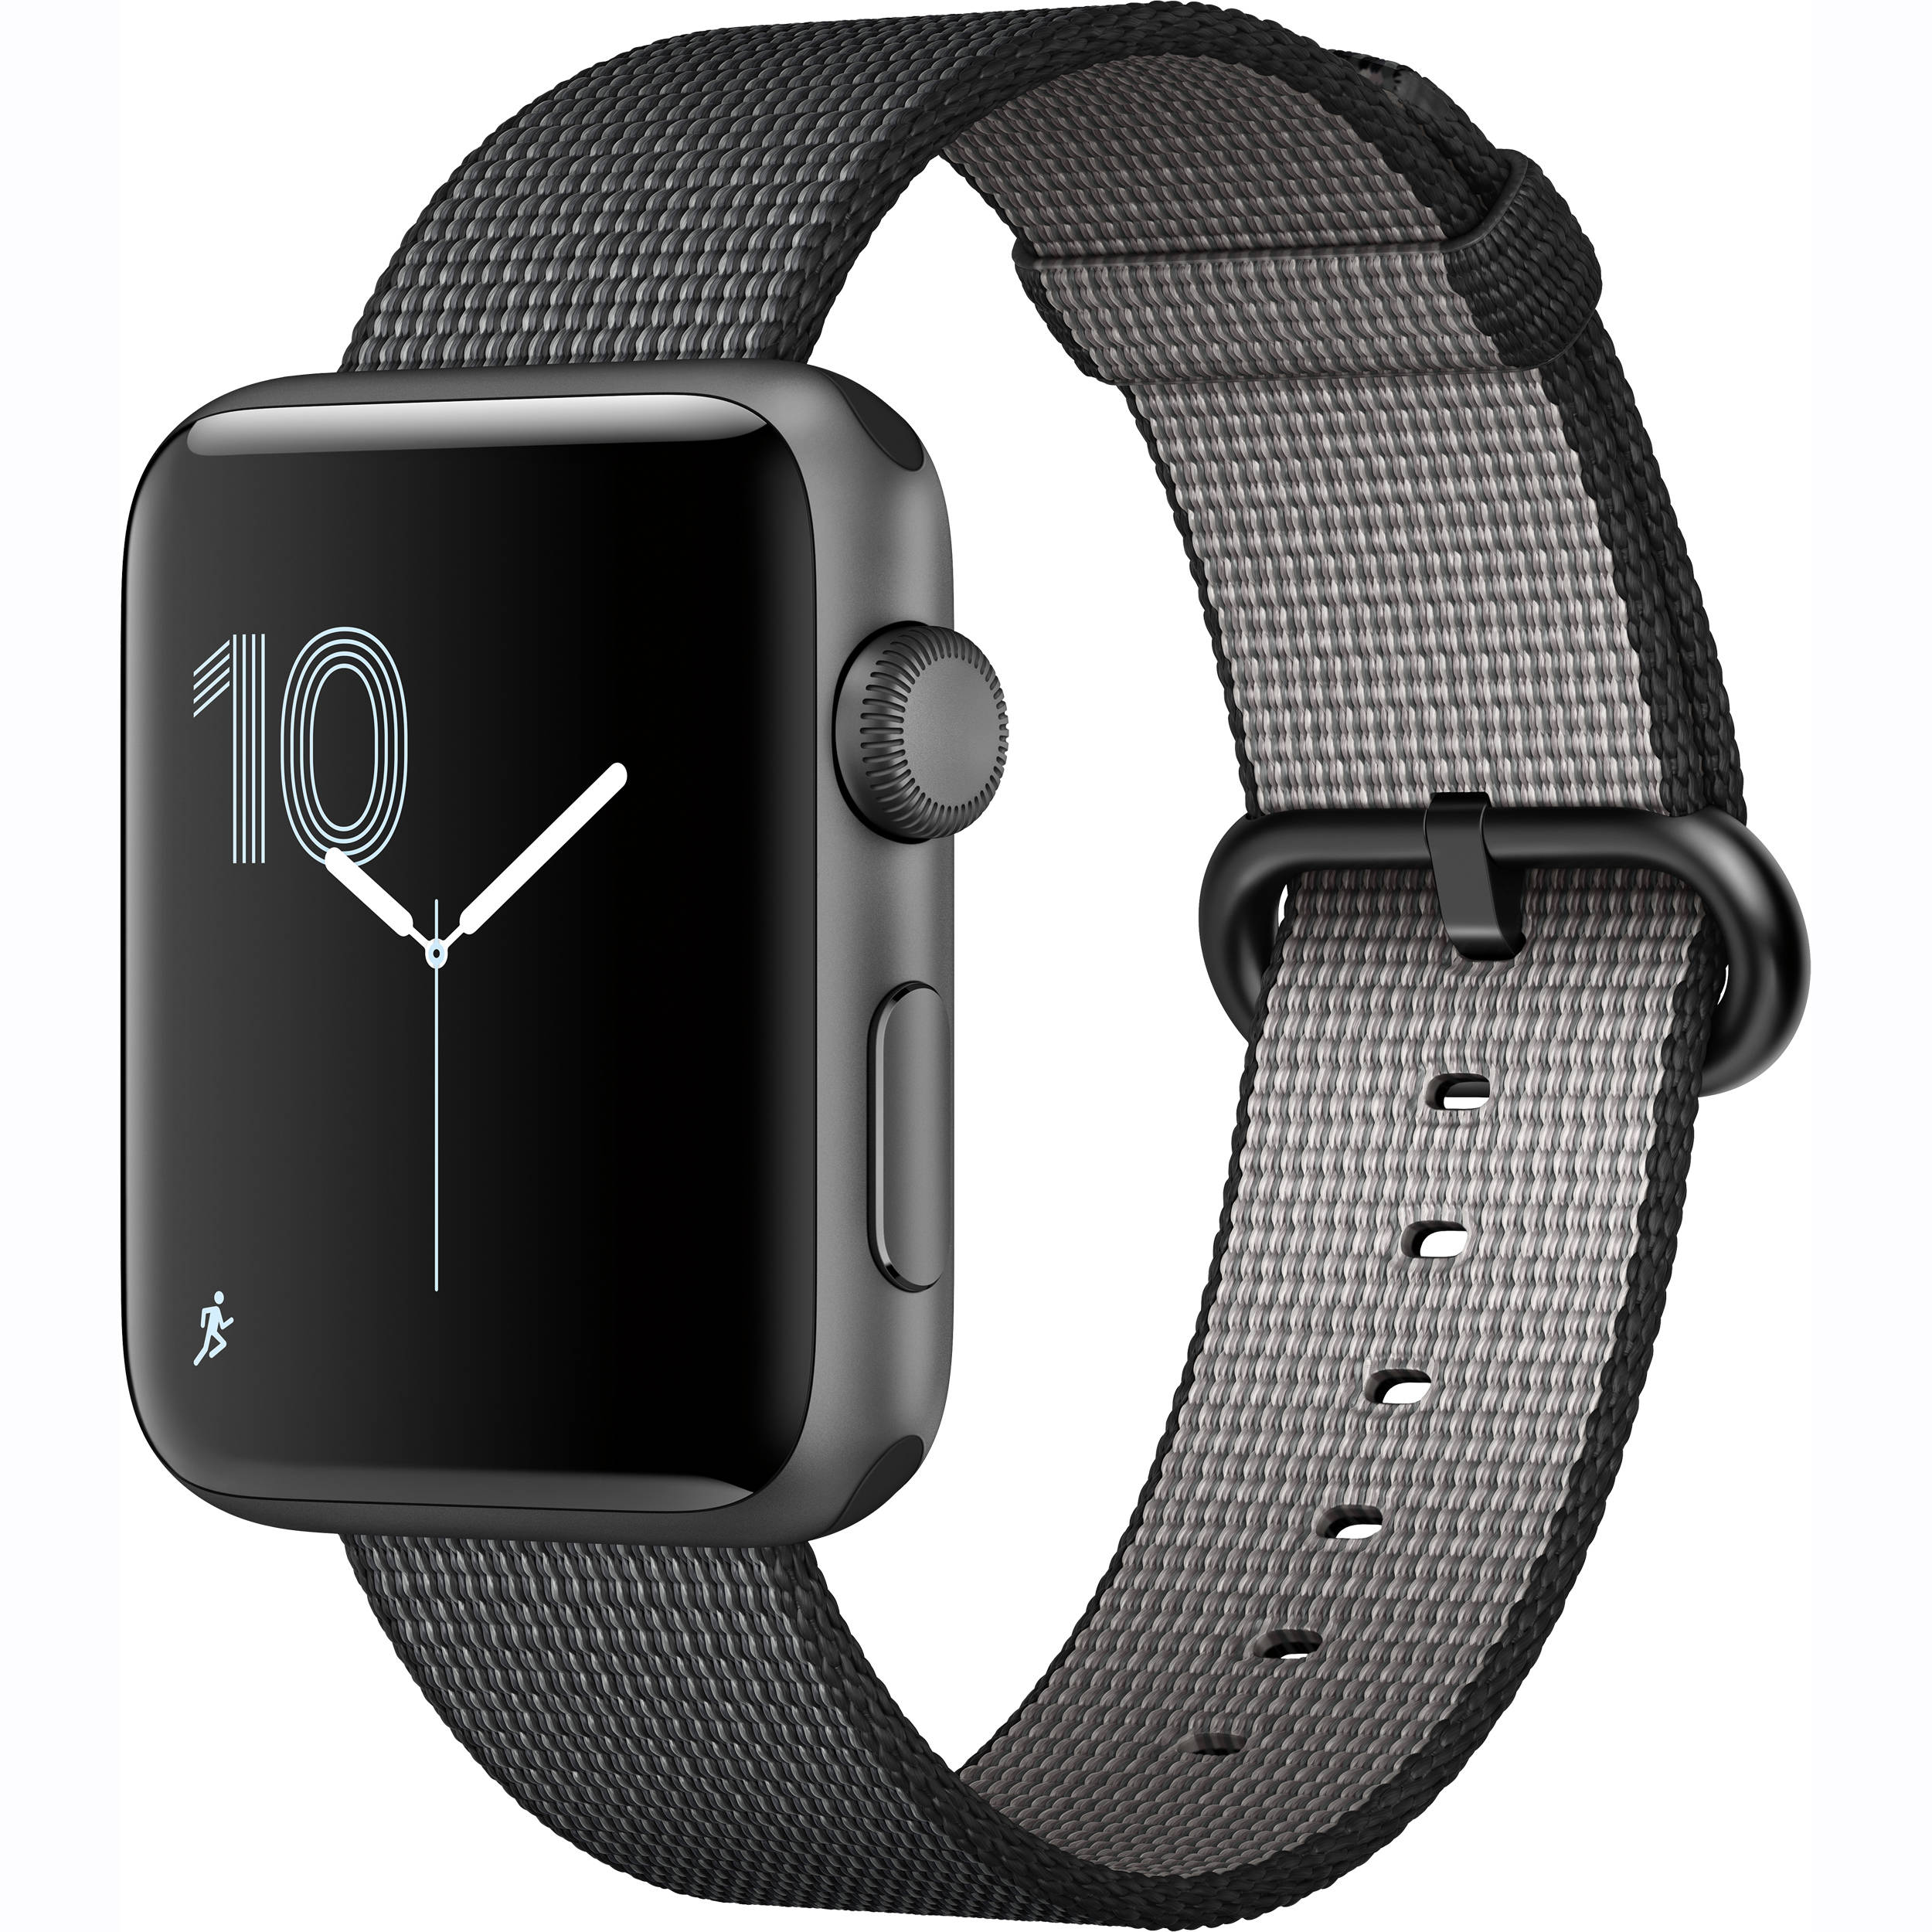 1f984d2f0efb Apple Watch Series 2 42mm Smartwatch (Space Gray Aluminum Case, Black Woven  Nylon Band)